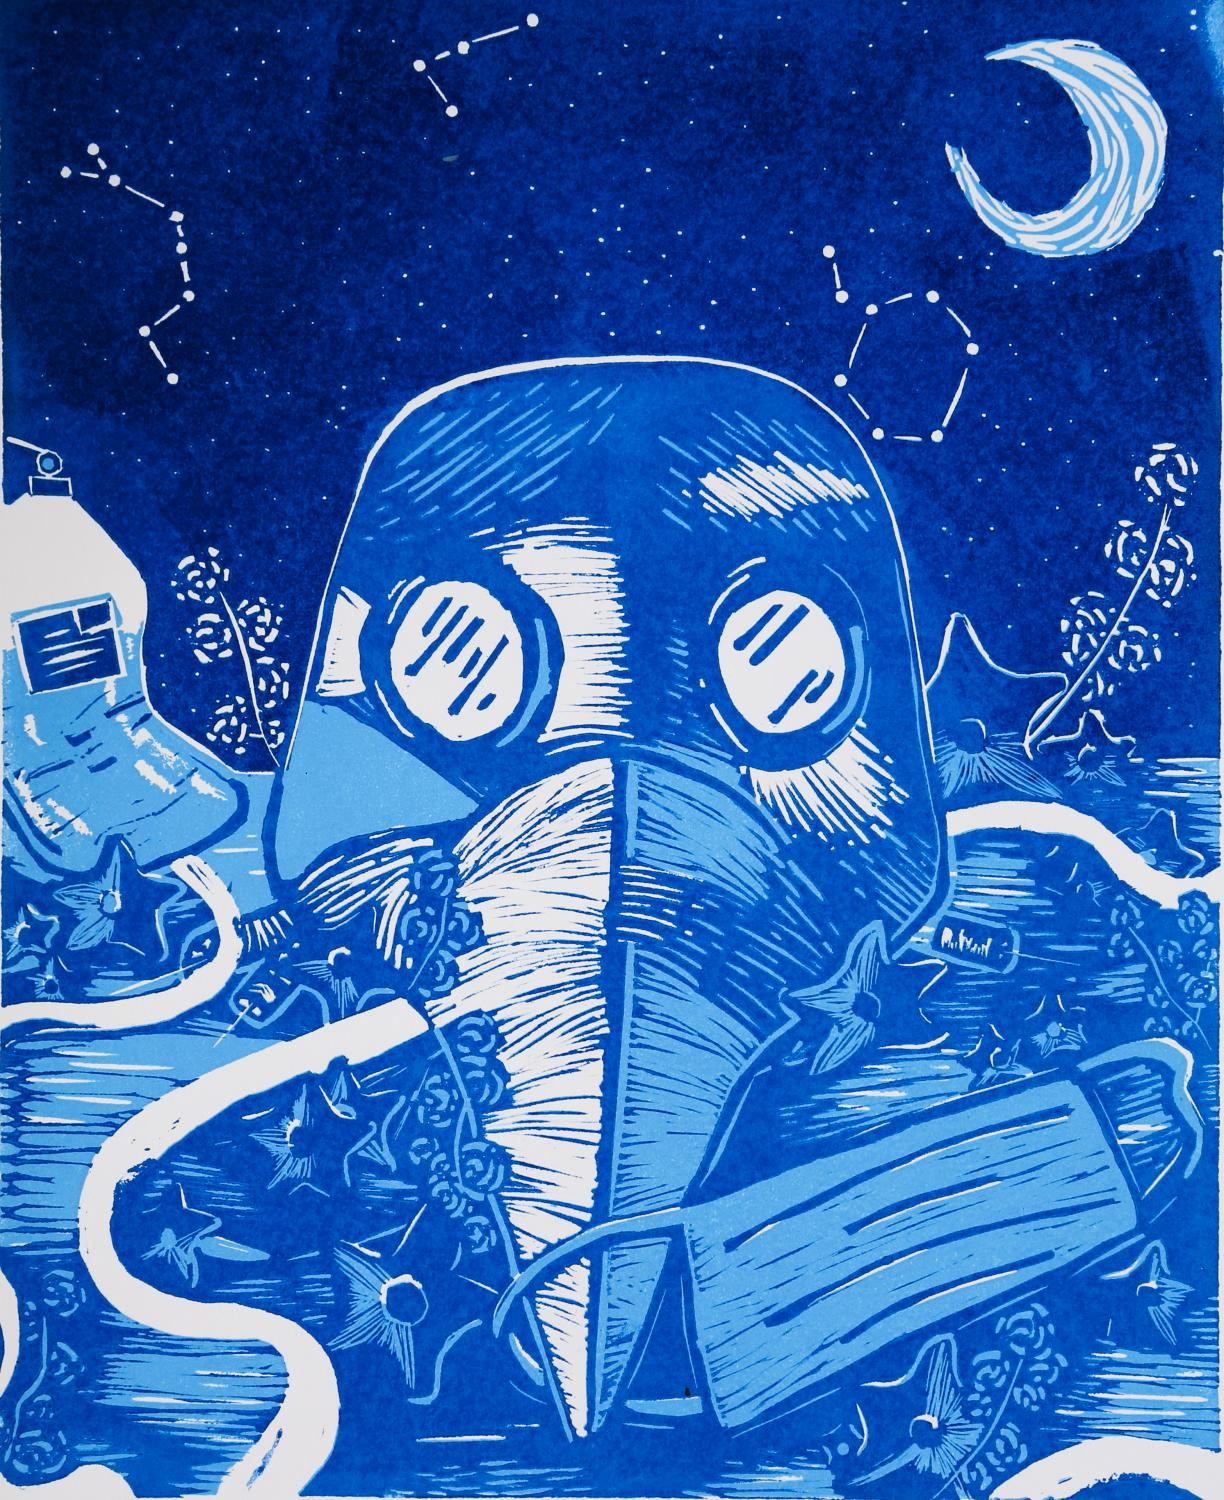 Image of a plague mask with a beaked nose and goggles with a face mask hanging from its beak. In the background are a moon and stars. The print was made using relief carving and is printed in dark and light blue ink.